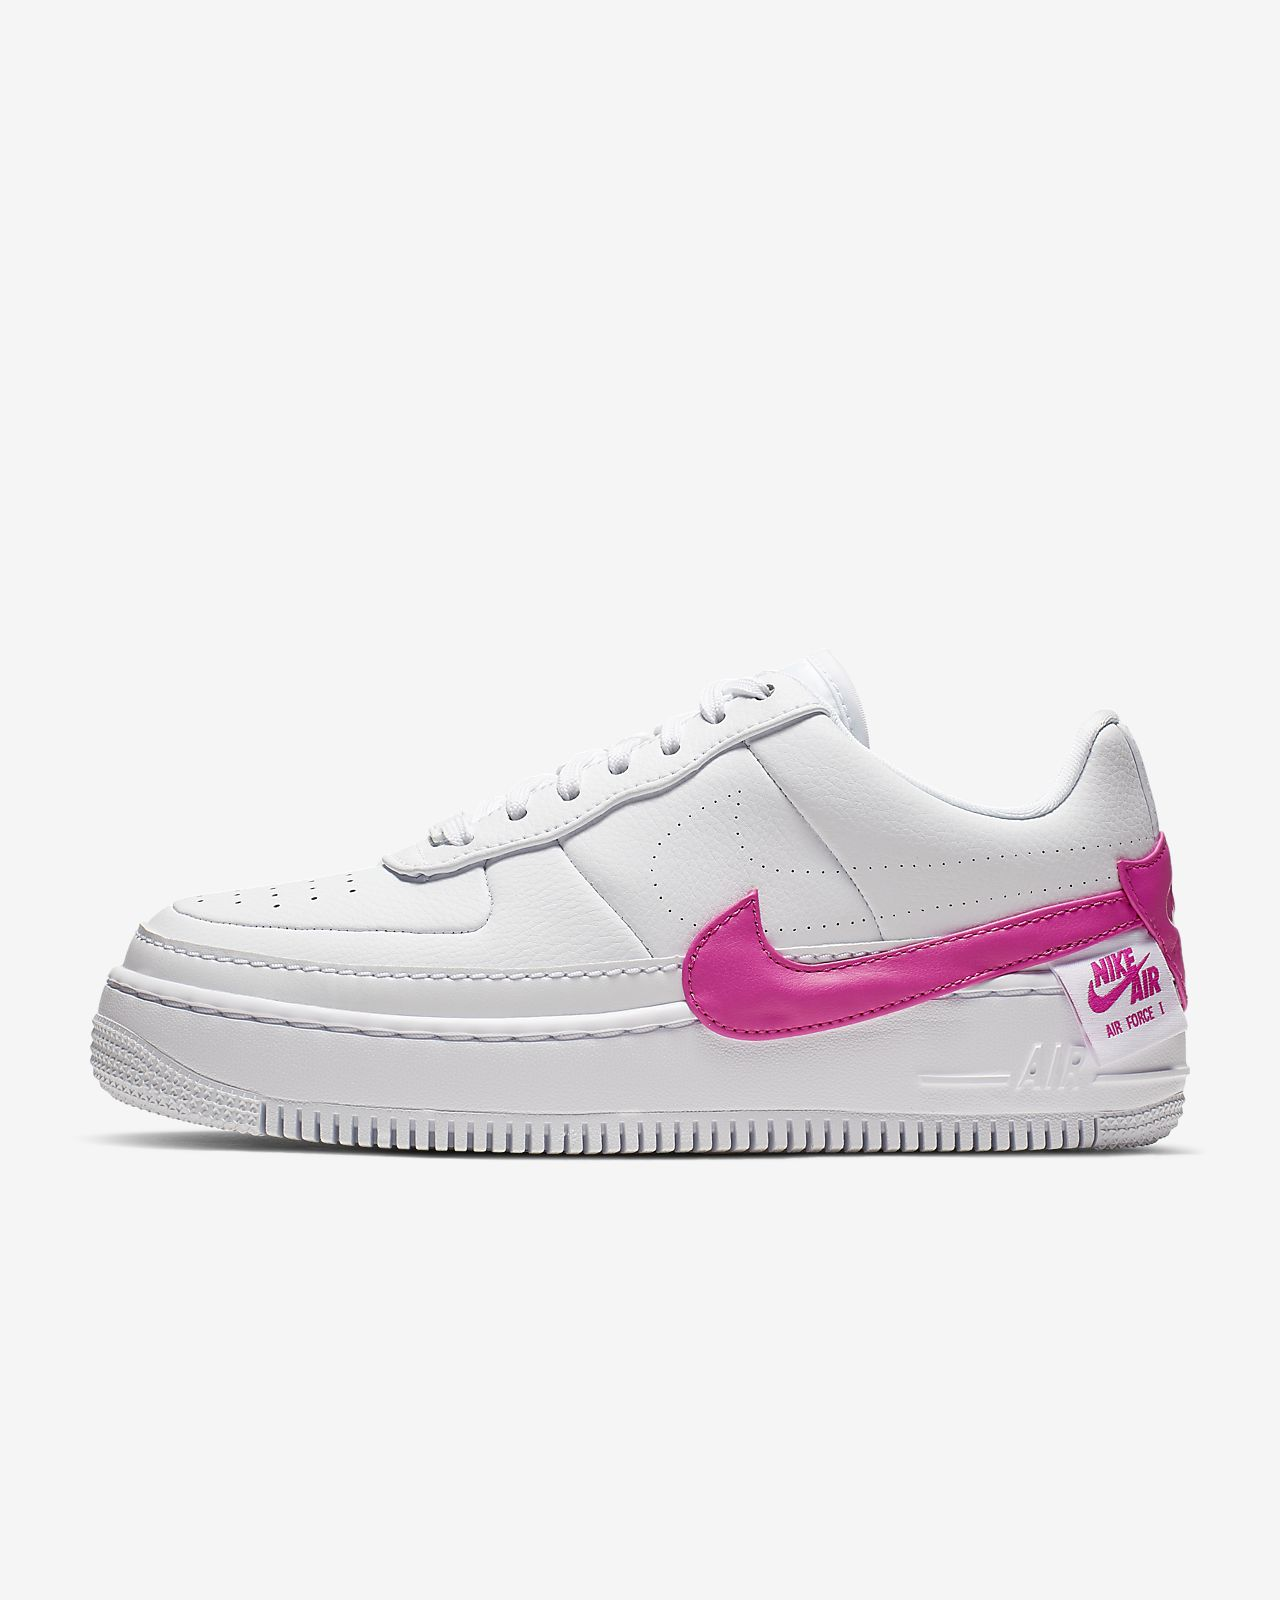 quality design 97a0e cff59 Nike Air Force 1 Jester XX